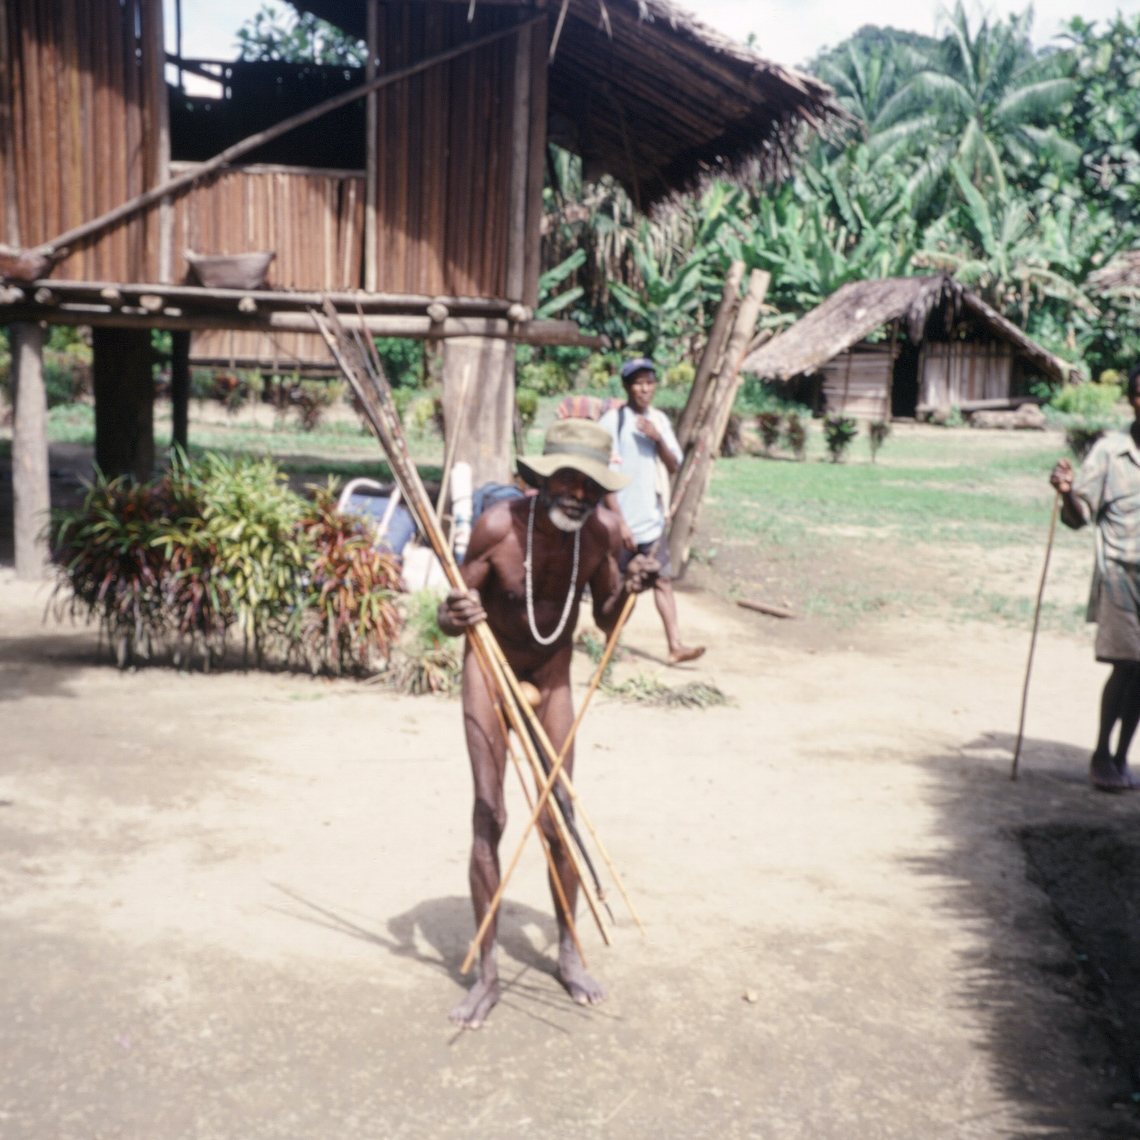 There is still some fight left in this old New Guinea warrior from the Amanab area, West Sepik Province, Papua New Guinea.  Stooped with age, brandishing the long bamboo arrows used in battle and wearing the traditional penis gourd—nothing fancy here, just a plain undecorated version the size and shape of a goose egg, circa 2001/2.